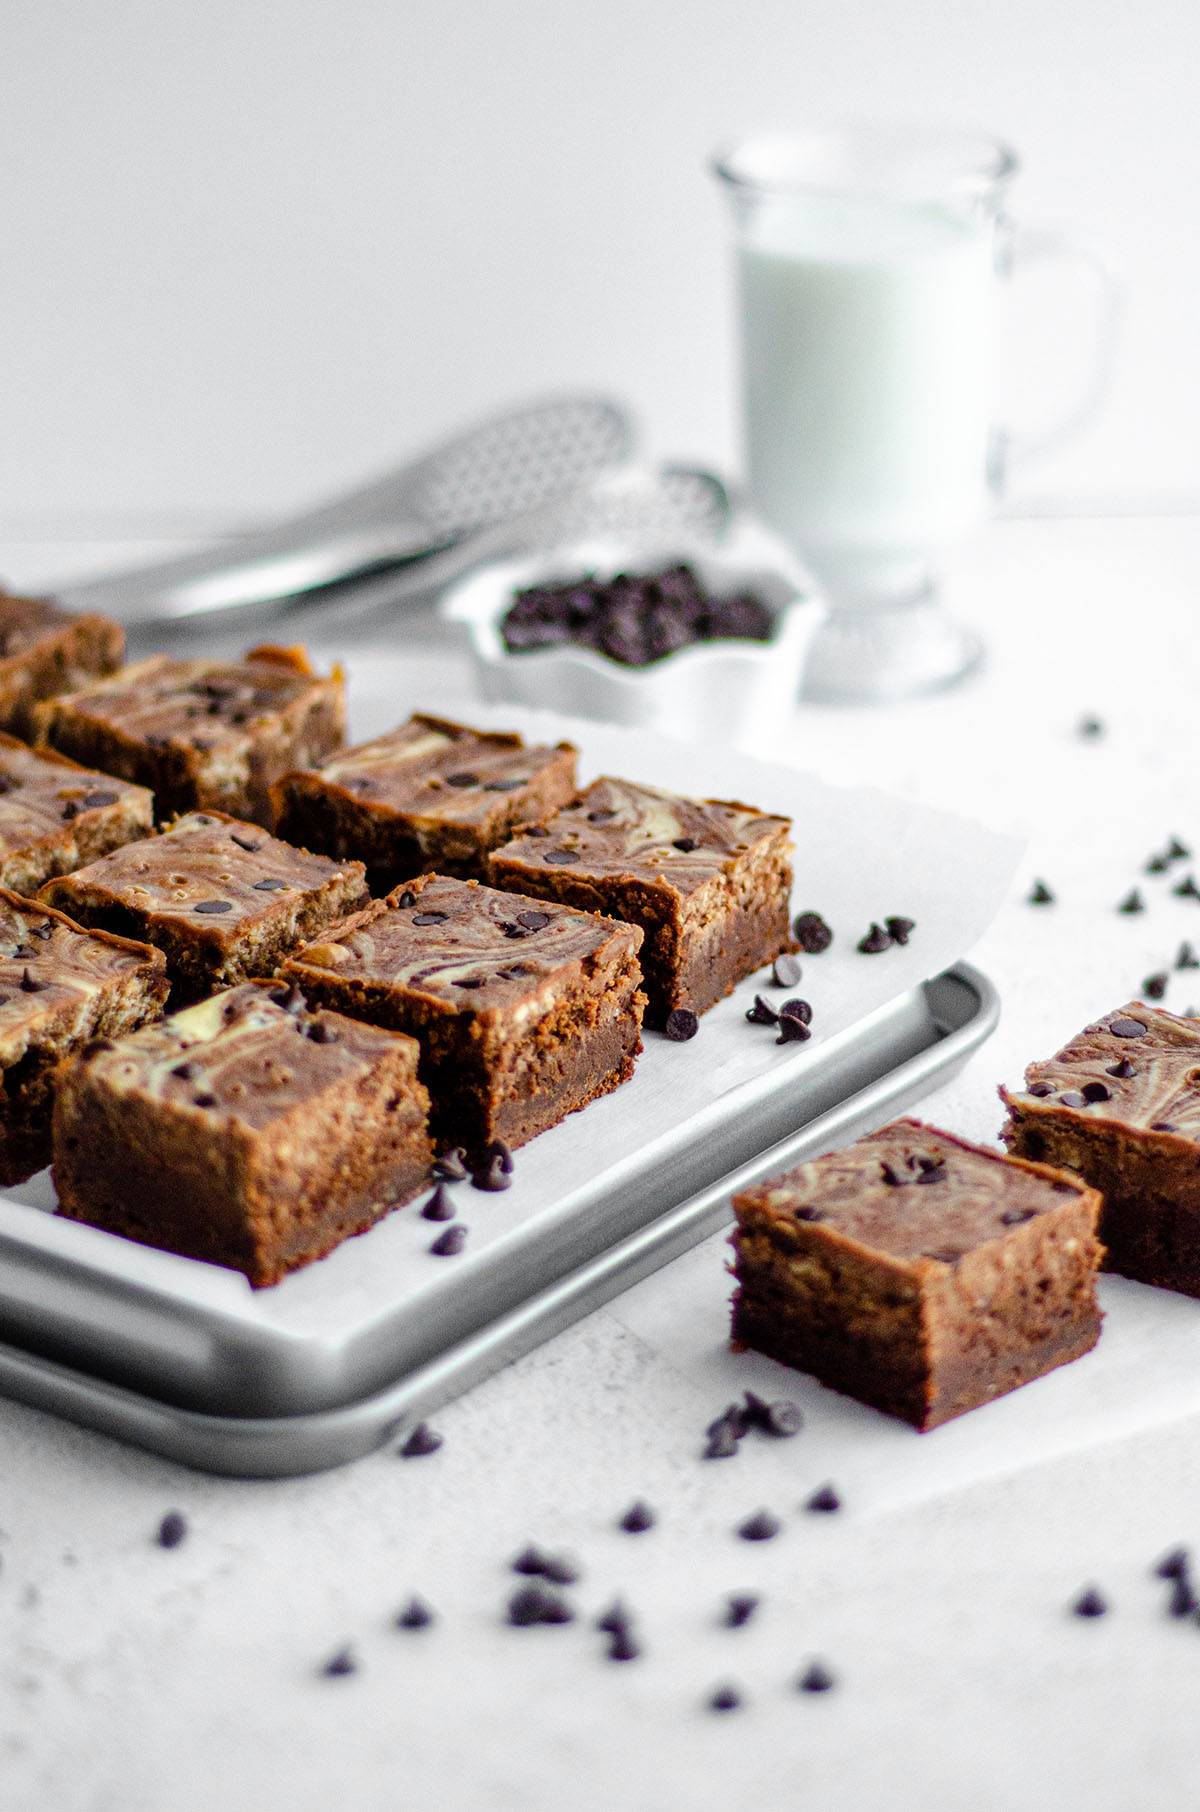 Chocolate Chip Cheesecake Swirl Brownies: Dense and fudgy scratch brownies swirled with sweet chocolate chip cheesecake.